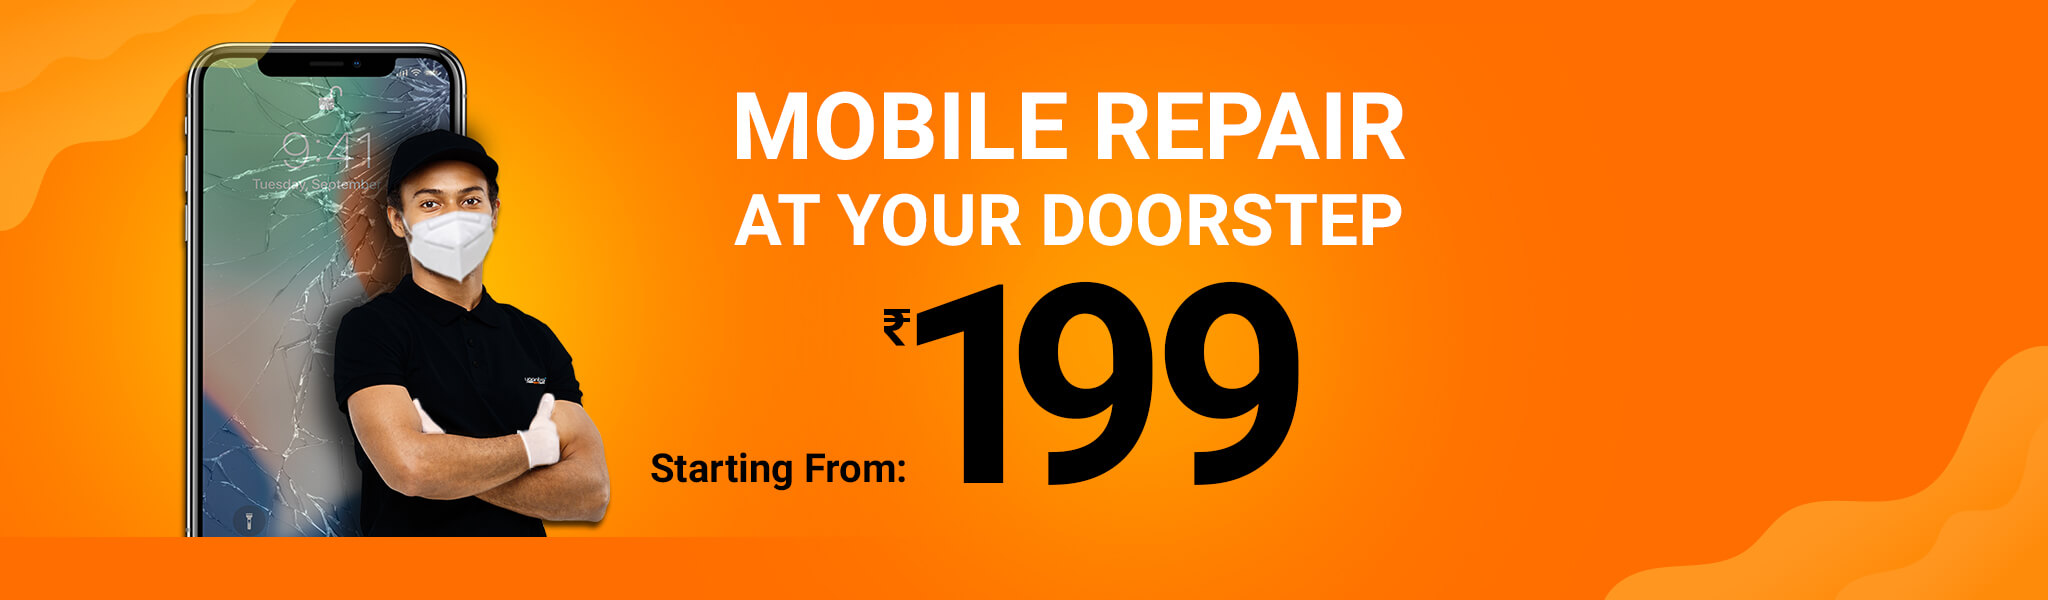 Doorstep Mobile Repair At Your Home & Office | Yaantra